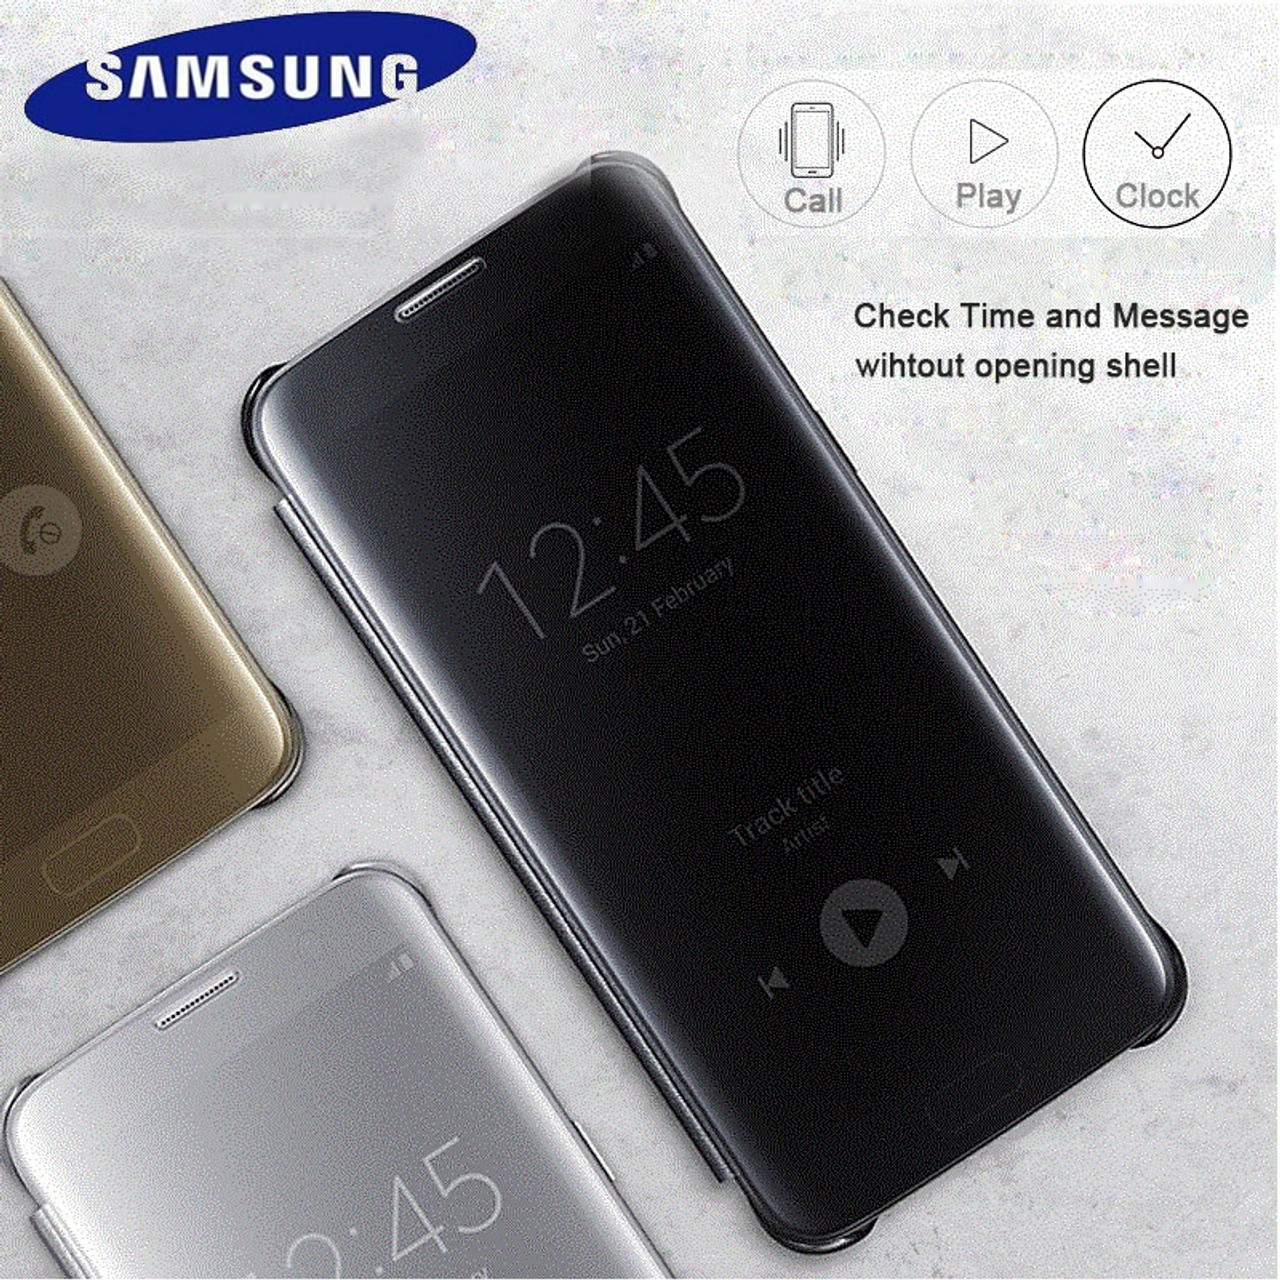 the latest 04747 1d772 Samsung S7 Case Cover Original Mirror Clear View Flip Case For Galaxy S7  G930 S7 Edge G935 lntelligent Sleep Protective Case